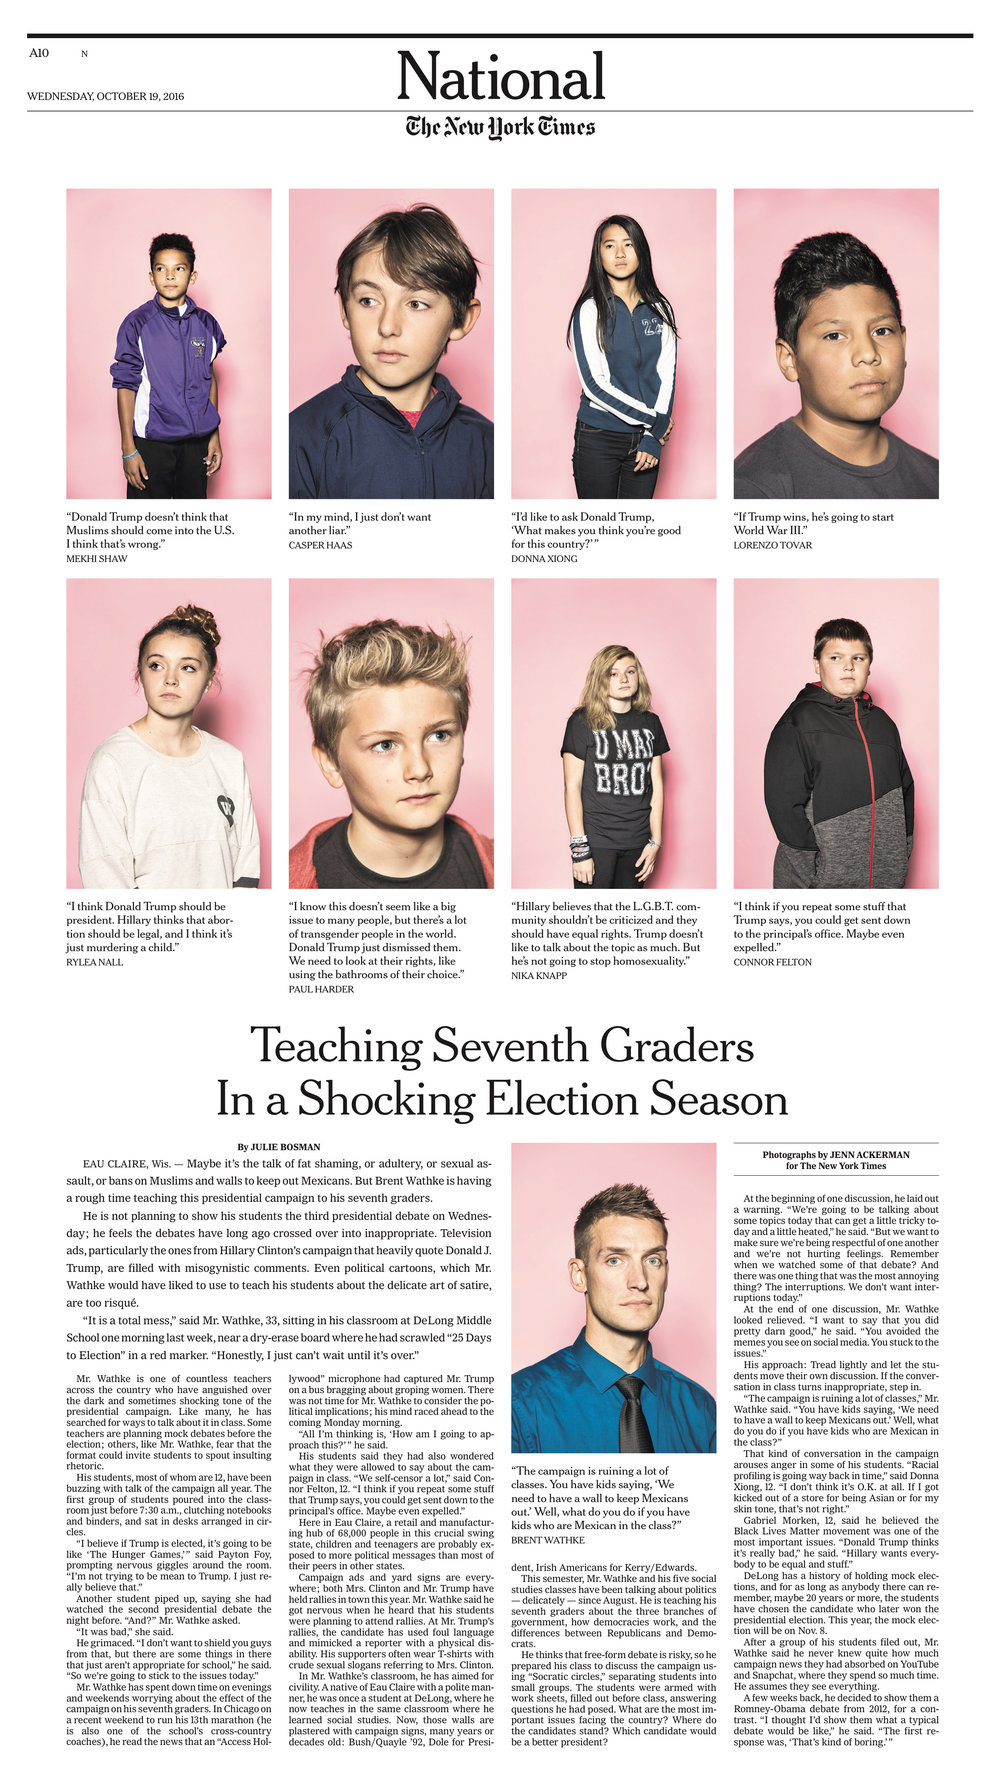 7th Grade Politics / The New York Times